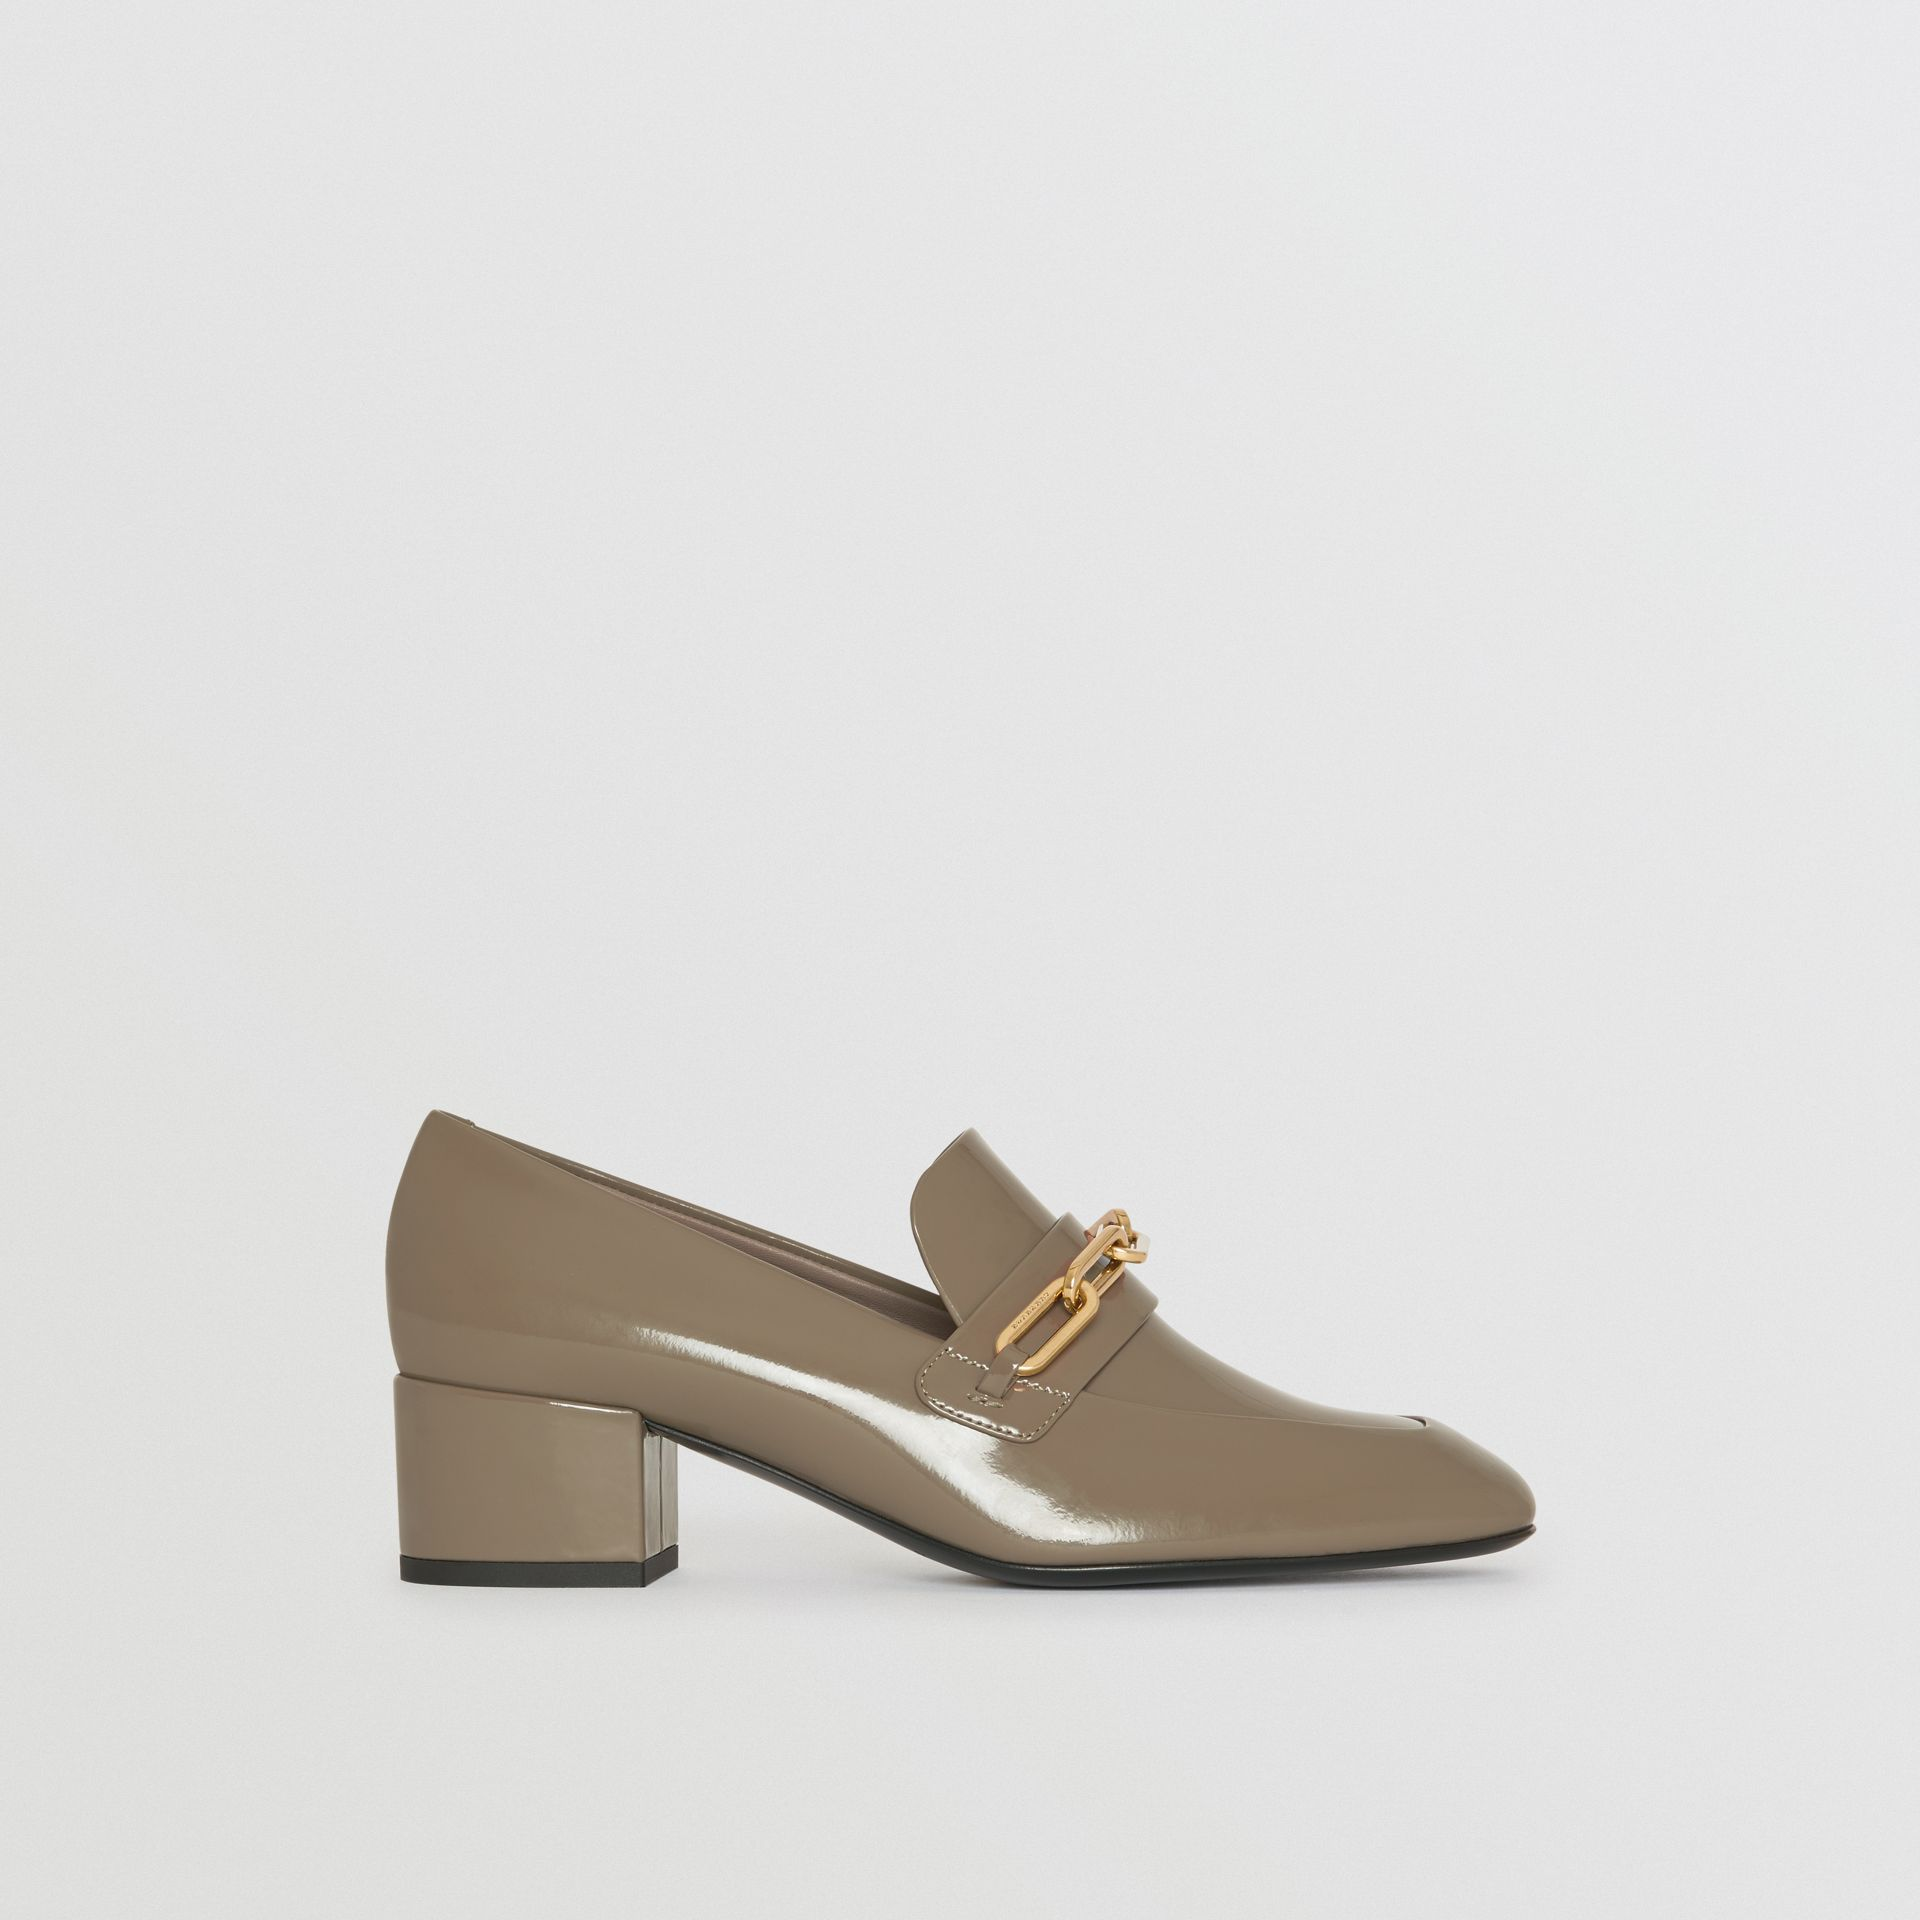 Link Detail Patent Leather Block-heel Loafers in Taupe Grey - Women | Burberry - gallery image 5